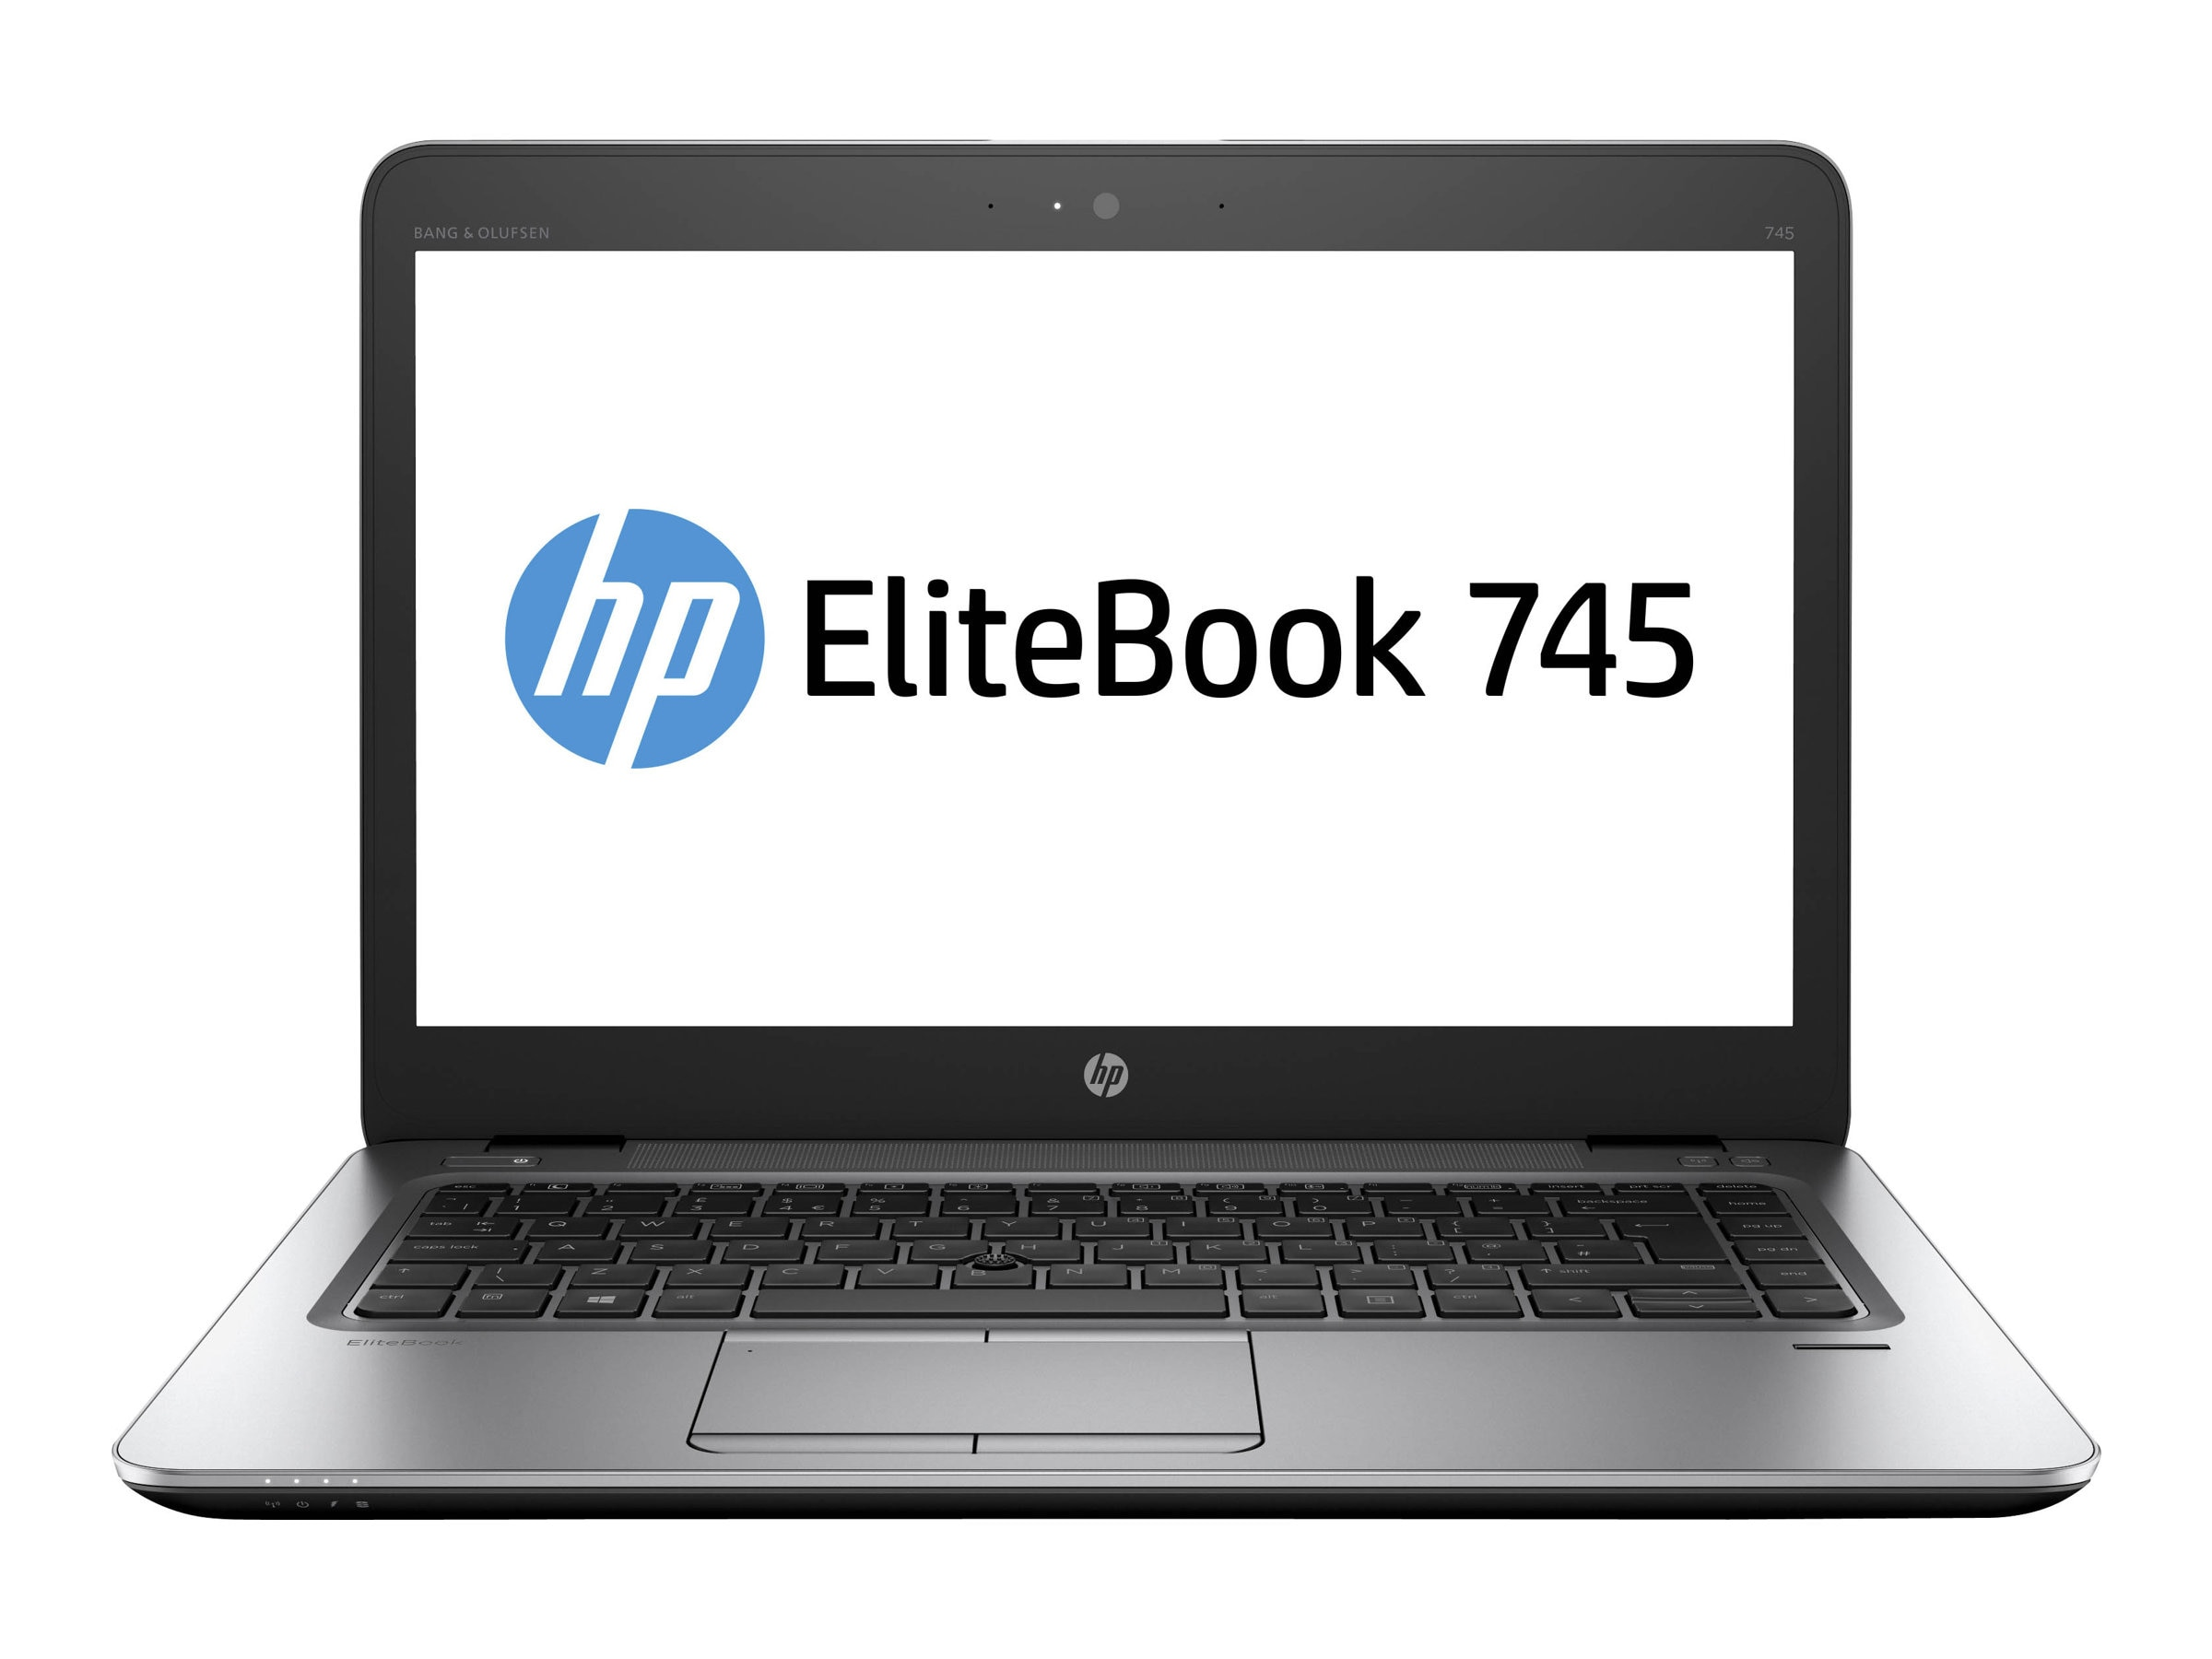 HP EliteBook 745 G3 1.8GHz A10 Series 14in display, T3L34UT#ABA